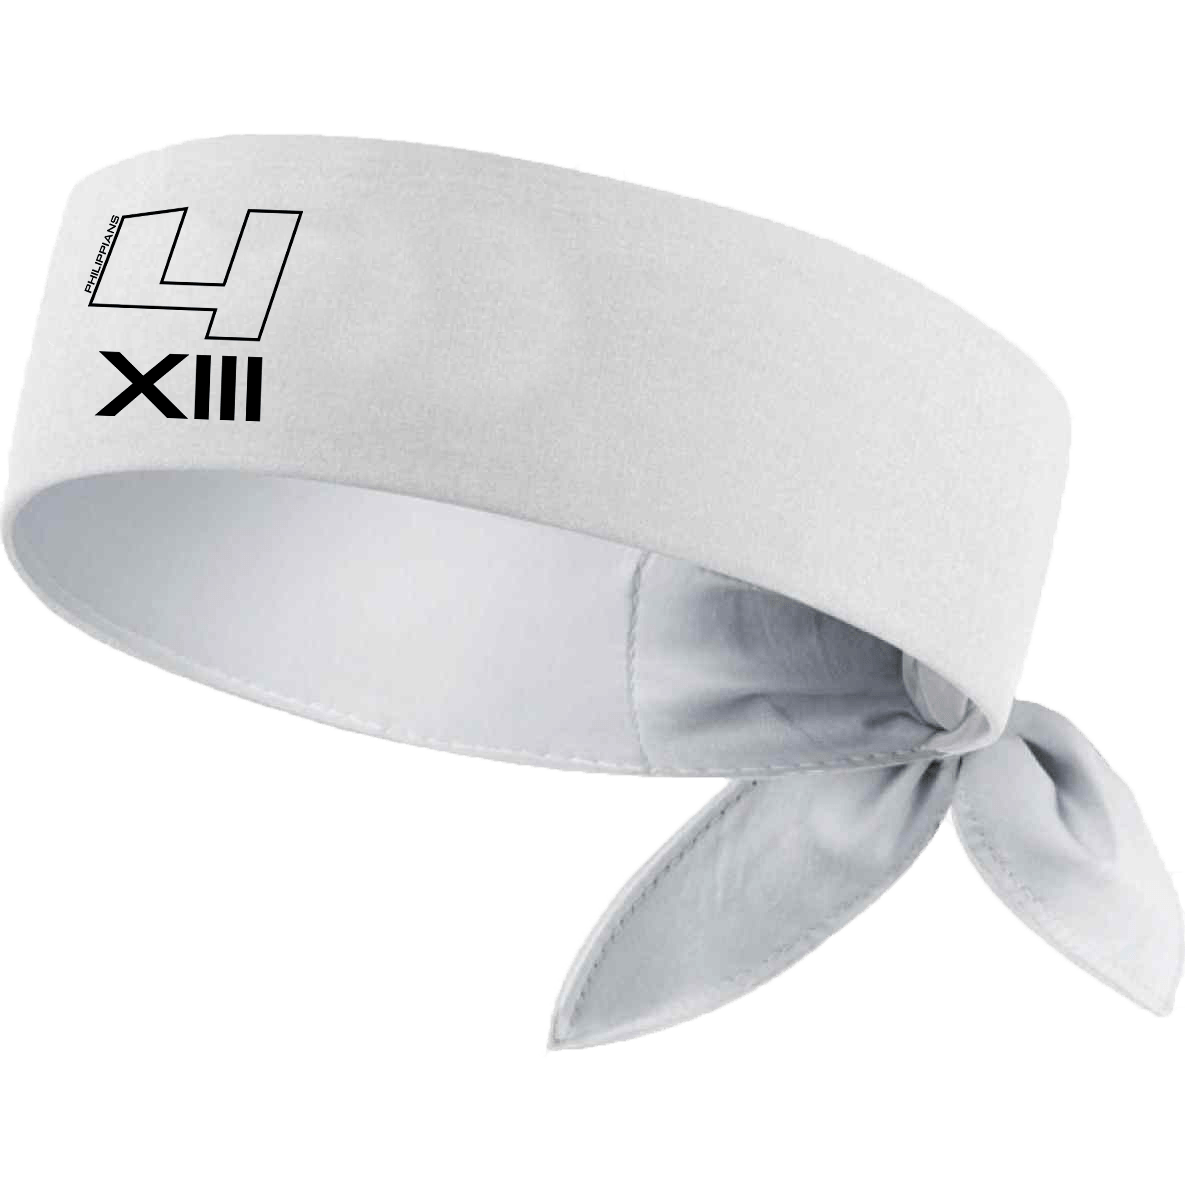 4XIII Performance Headband